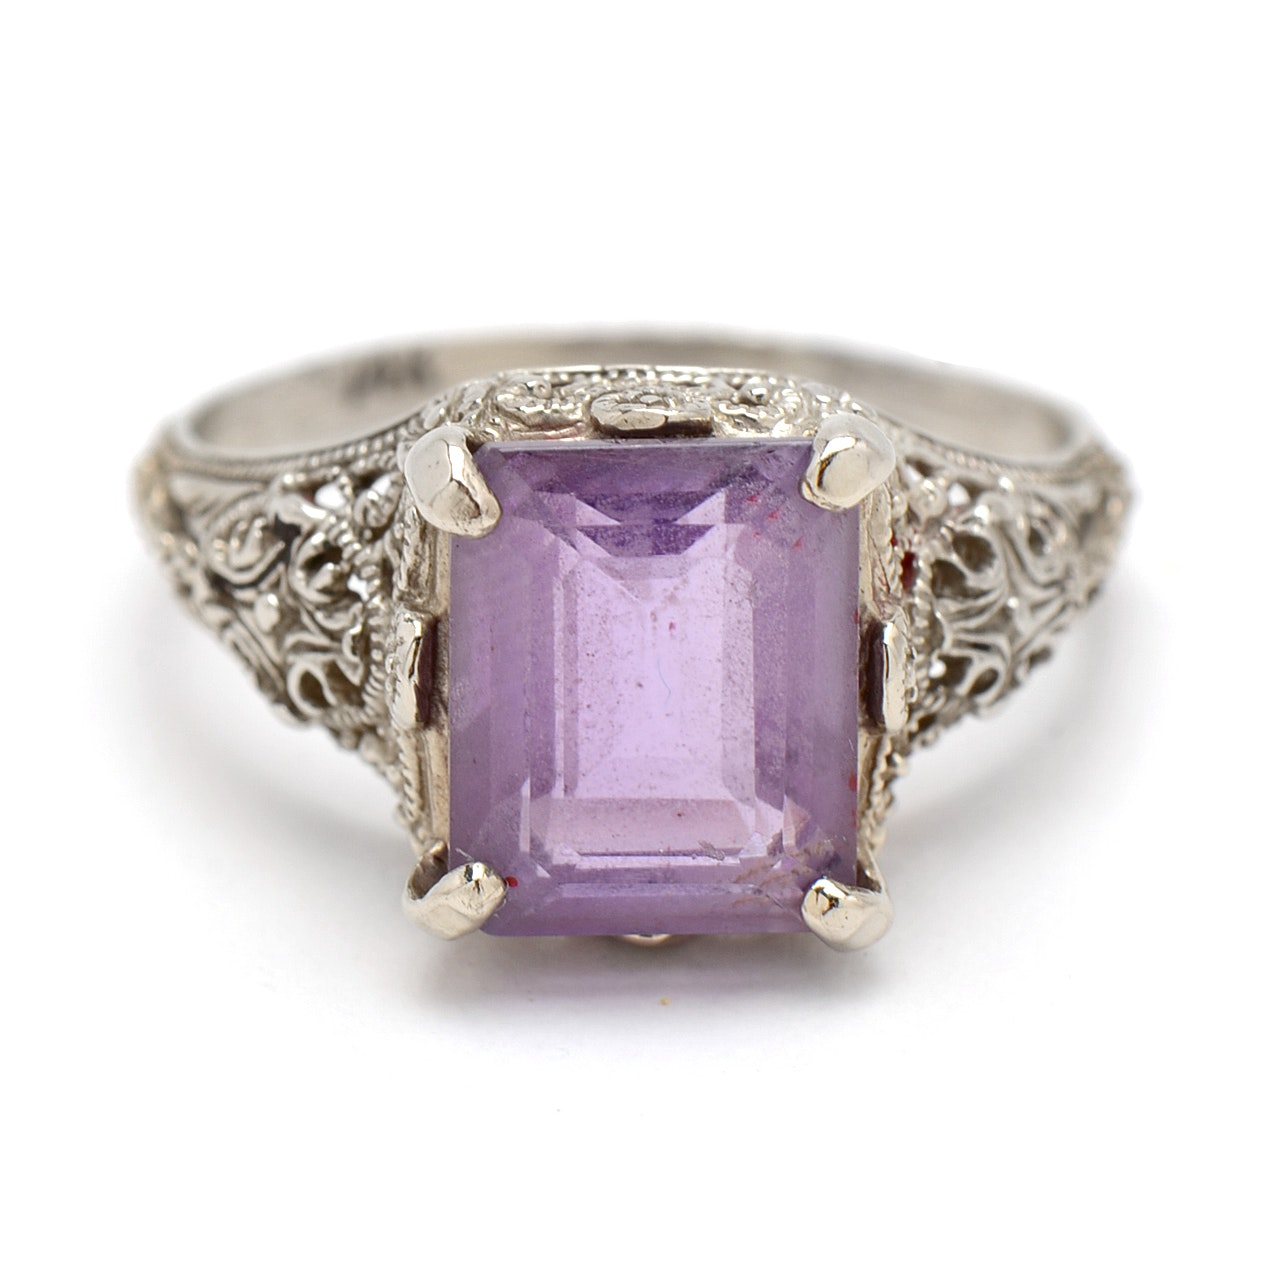 14K White Gold and Amethyst Filigree Ring